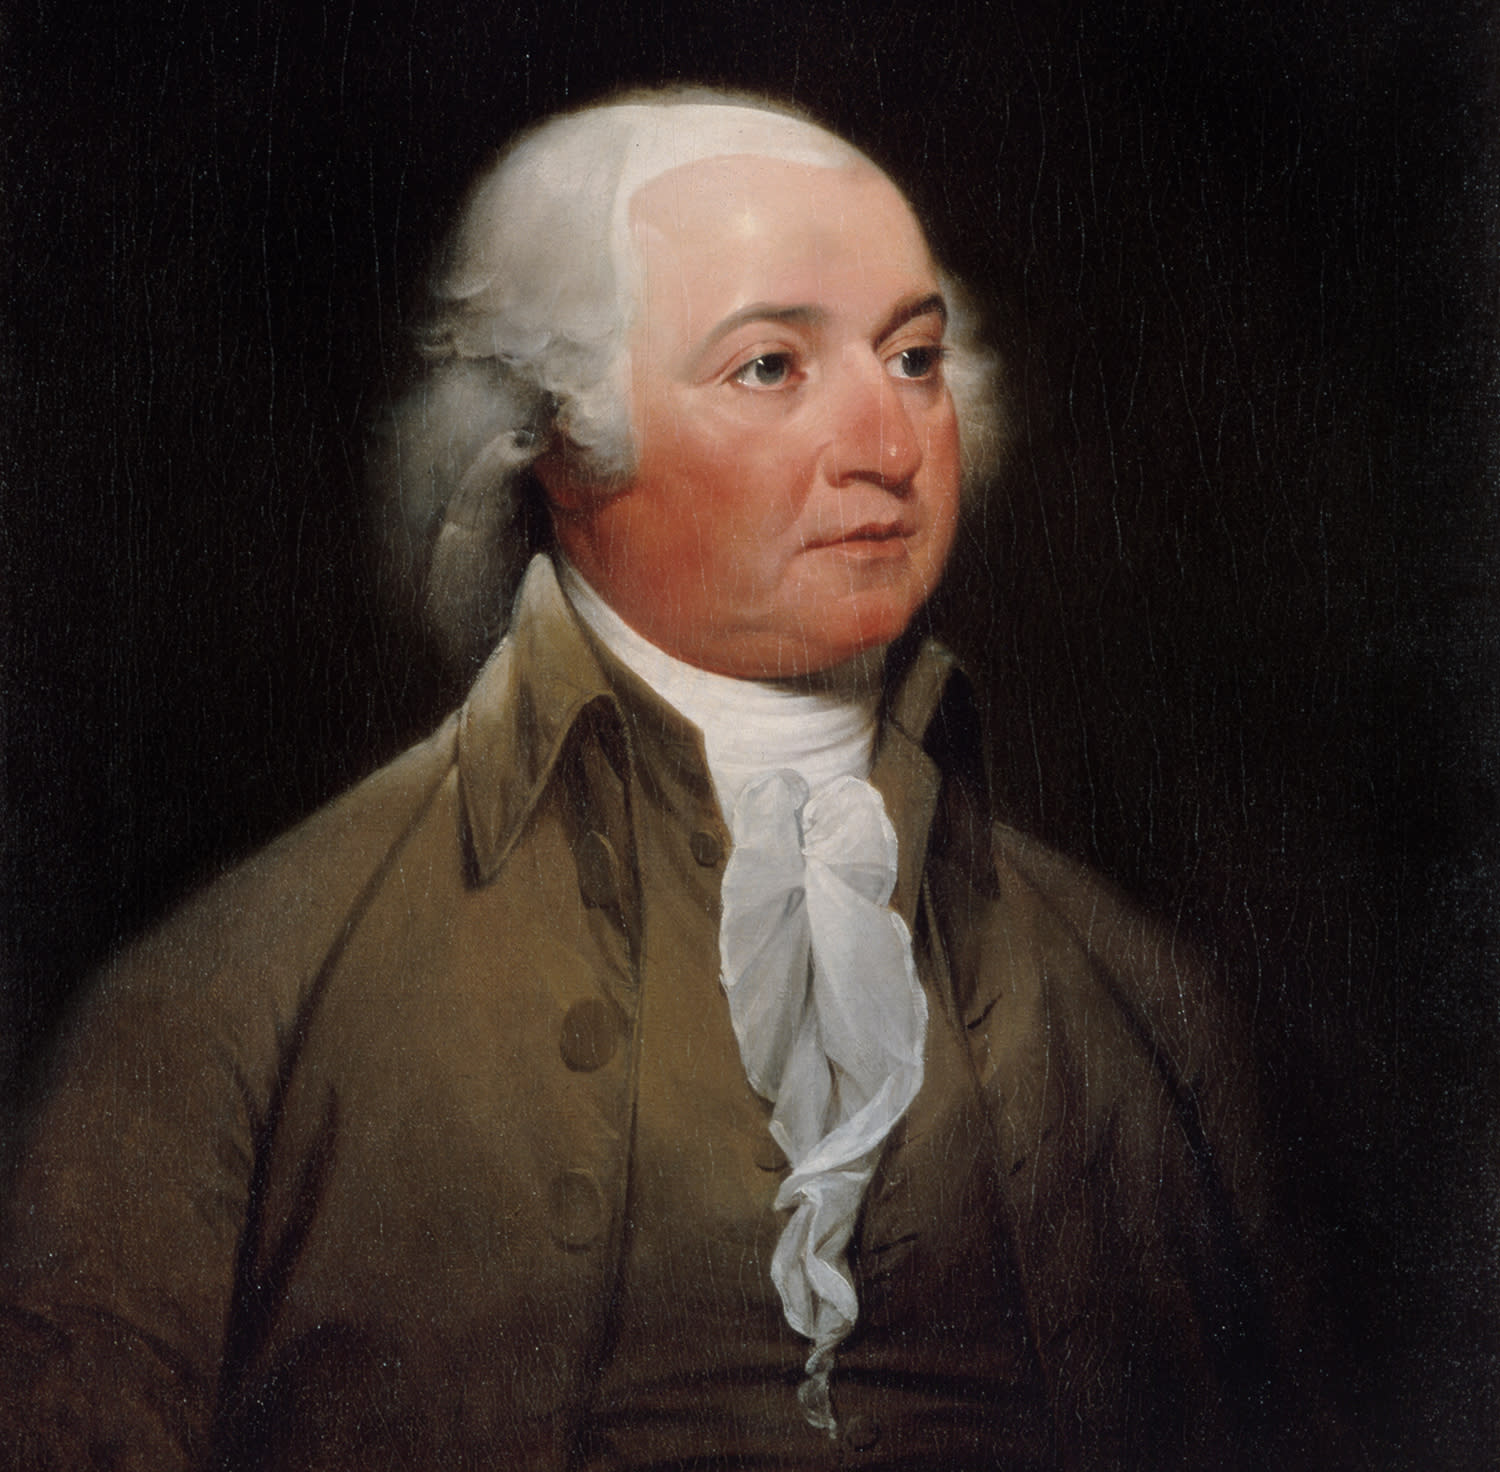 <p>John Adams, second president of the United States, 1797-1801. Official presidential portrait by John Trumbull, circa 1792. (White House Historical Association/White House Collection) </p>